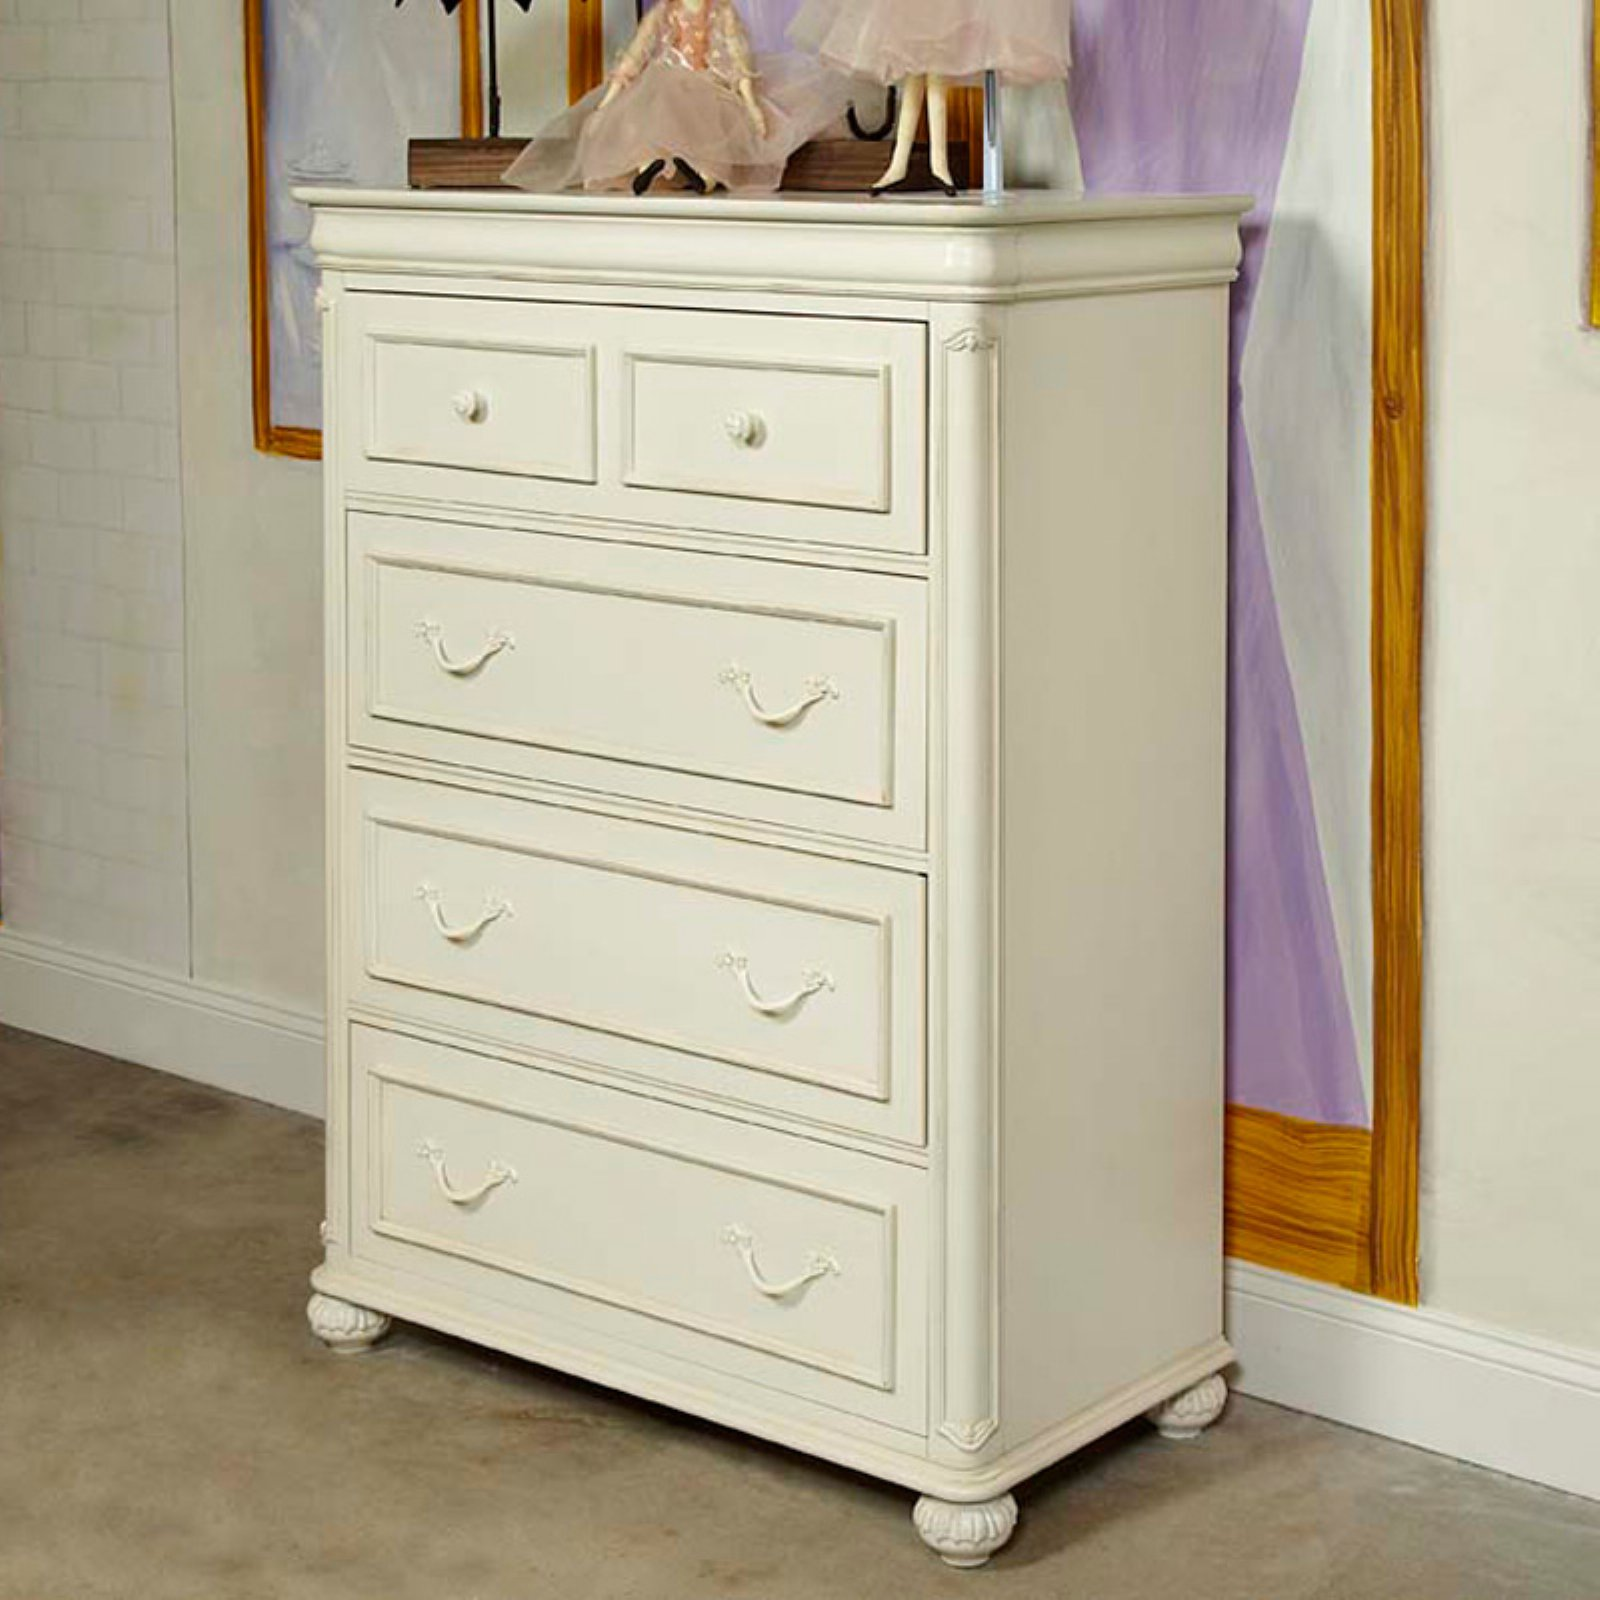 Charlotte 4 Drawer Chest - Antique White